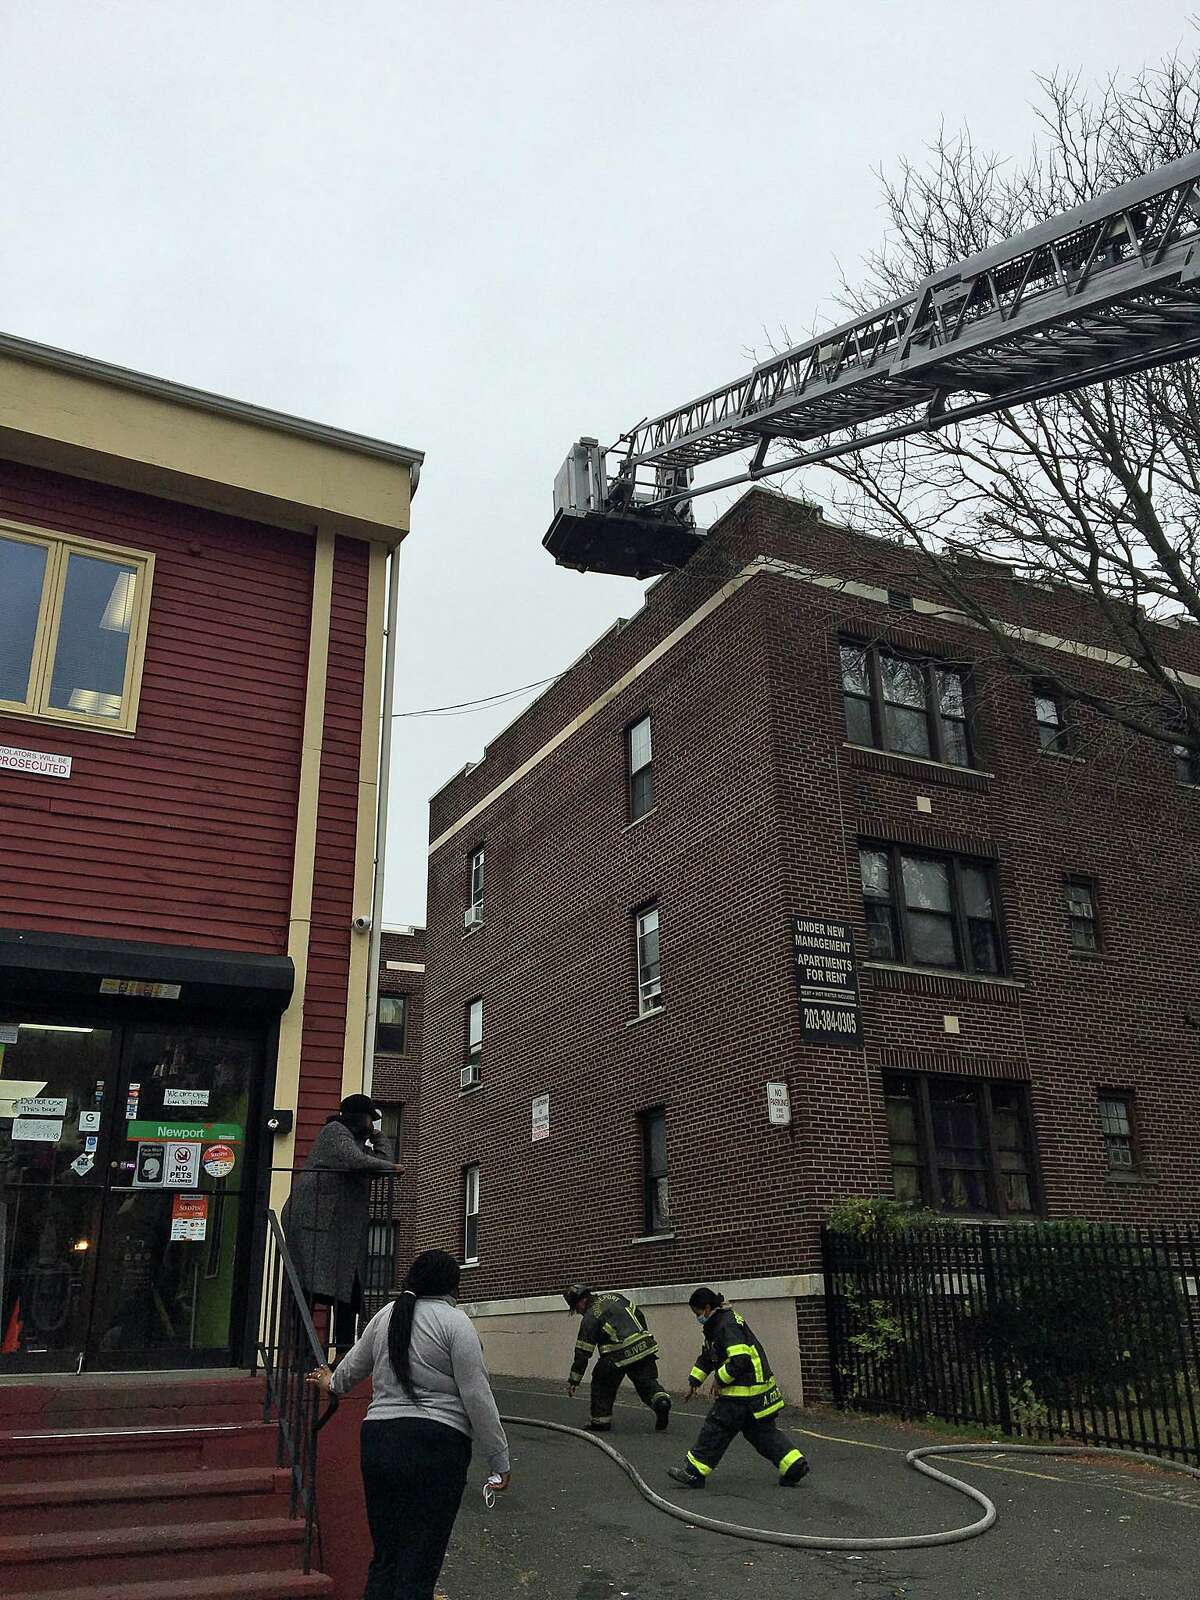 City firefighters battled a blaze in a Bridgeport Gardens apartment through apparent hoarding conditions Wednesday morning on Nov. 11, 2020, according to fire officials on scene. A cat was rescued from the building and given oxygen by firefighters. Two other cats perished in the blaze.